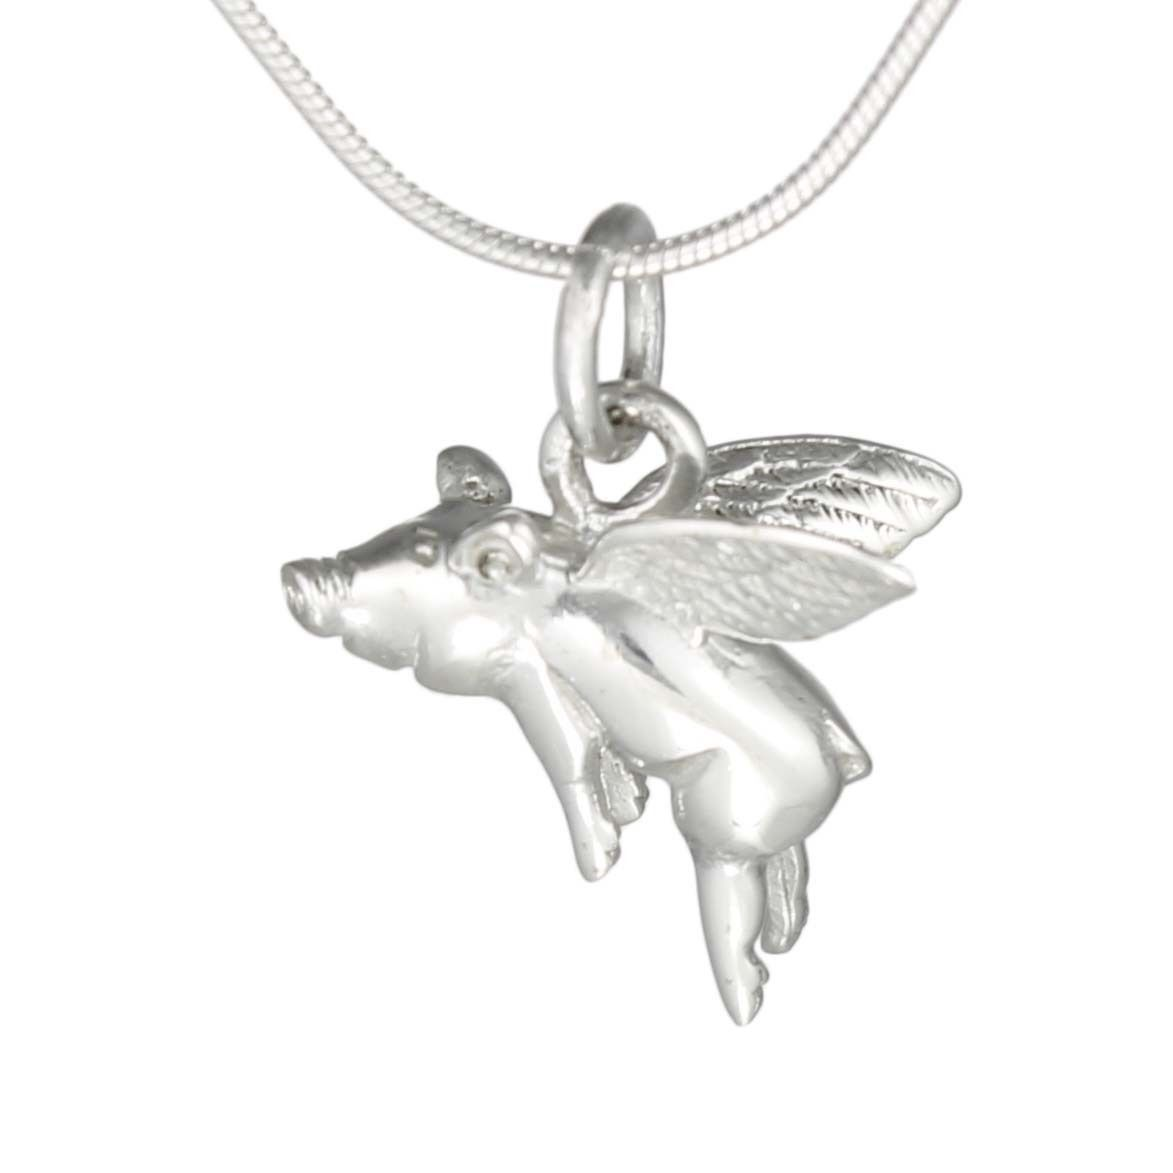 WHEN PIGS FLY Flying Pig Charm Pendant Necklace 925 Sterling Silver